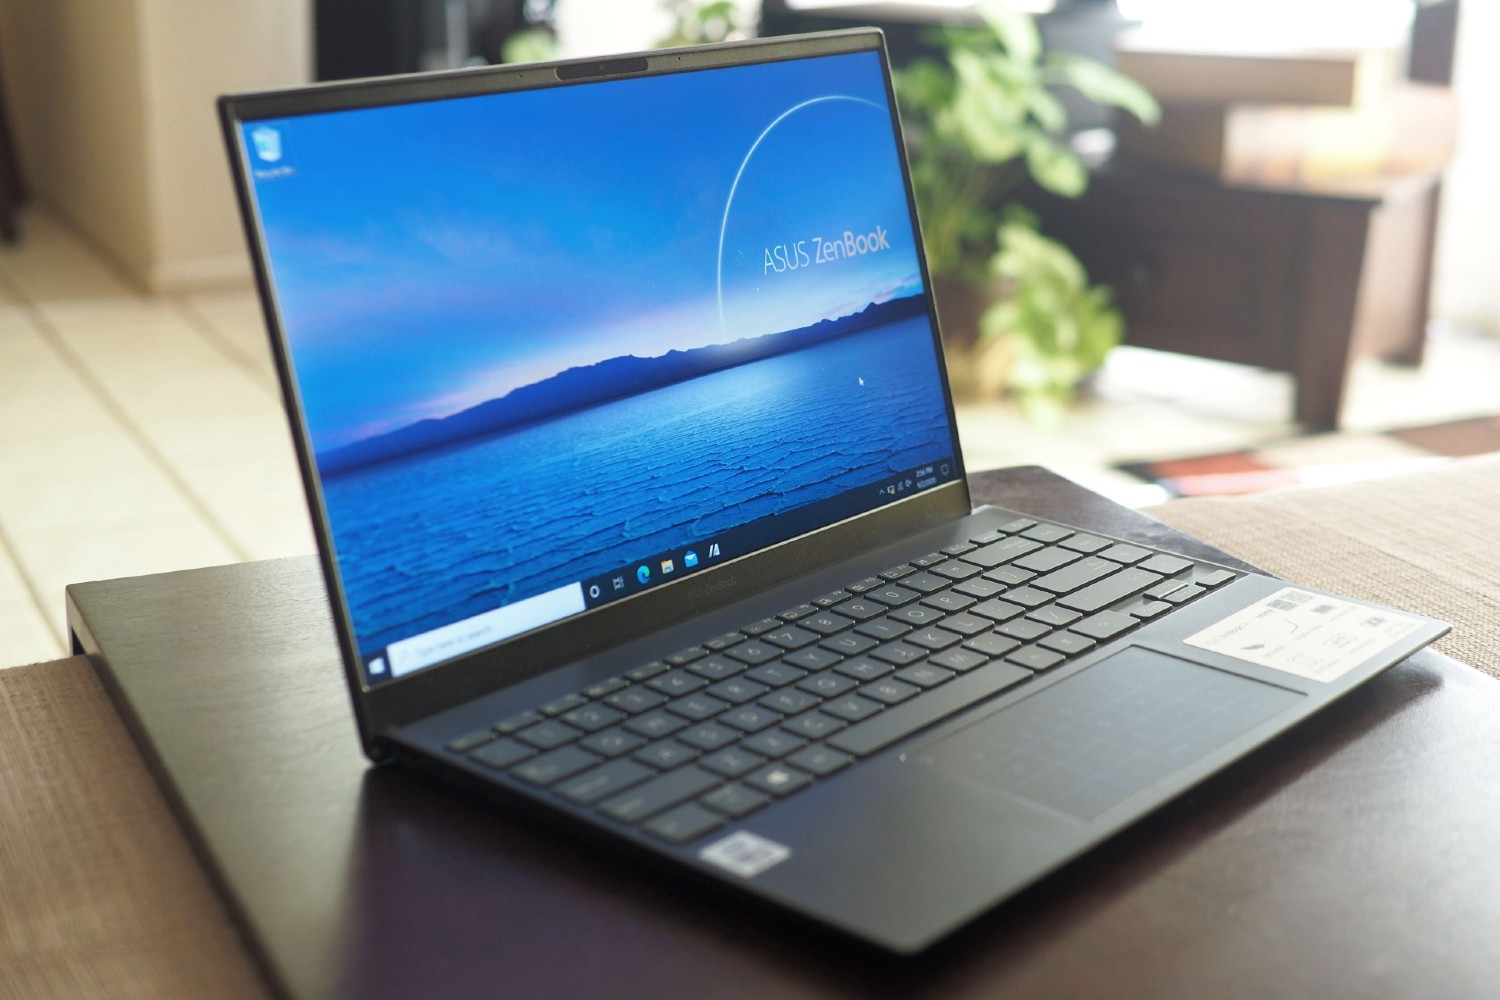 Best Laptop for Editing Video And Photos